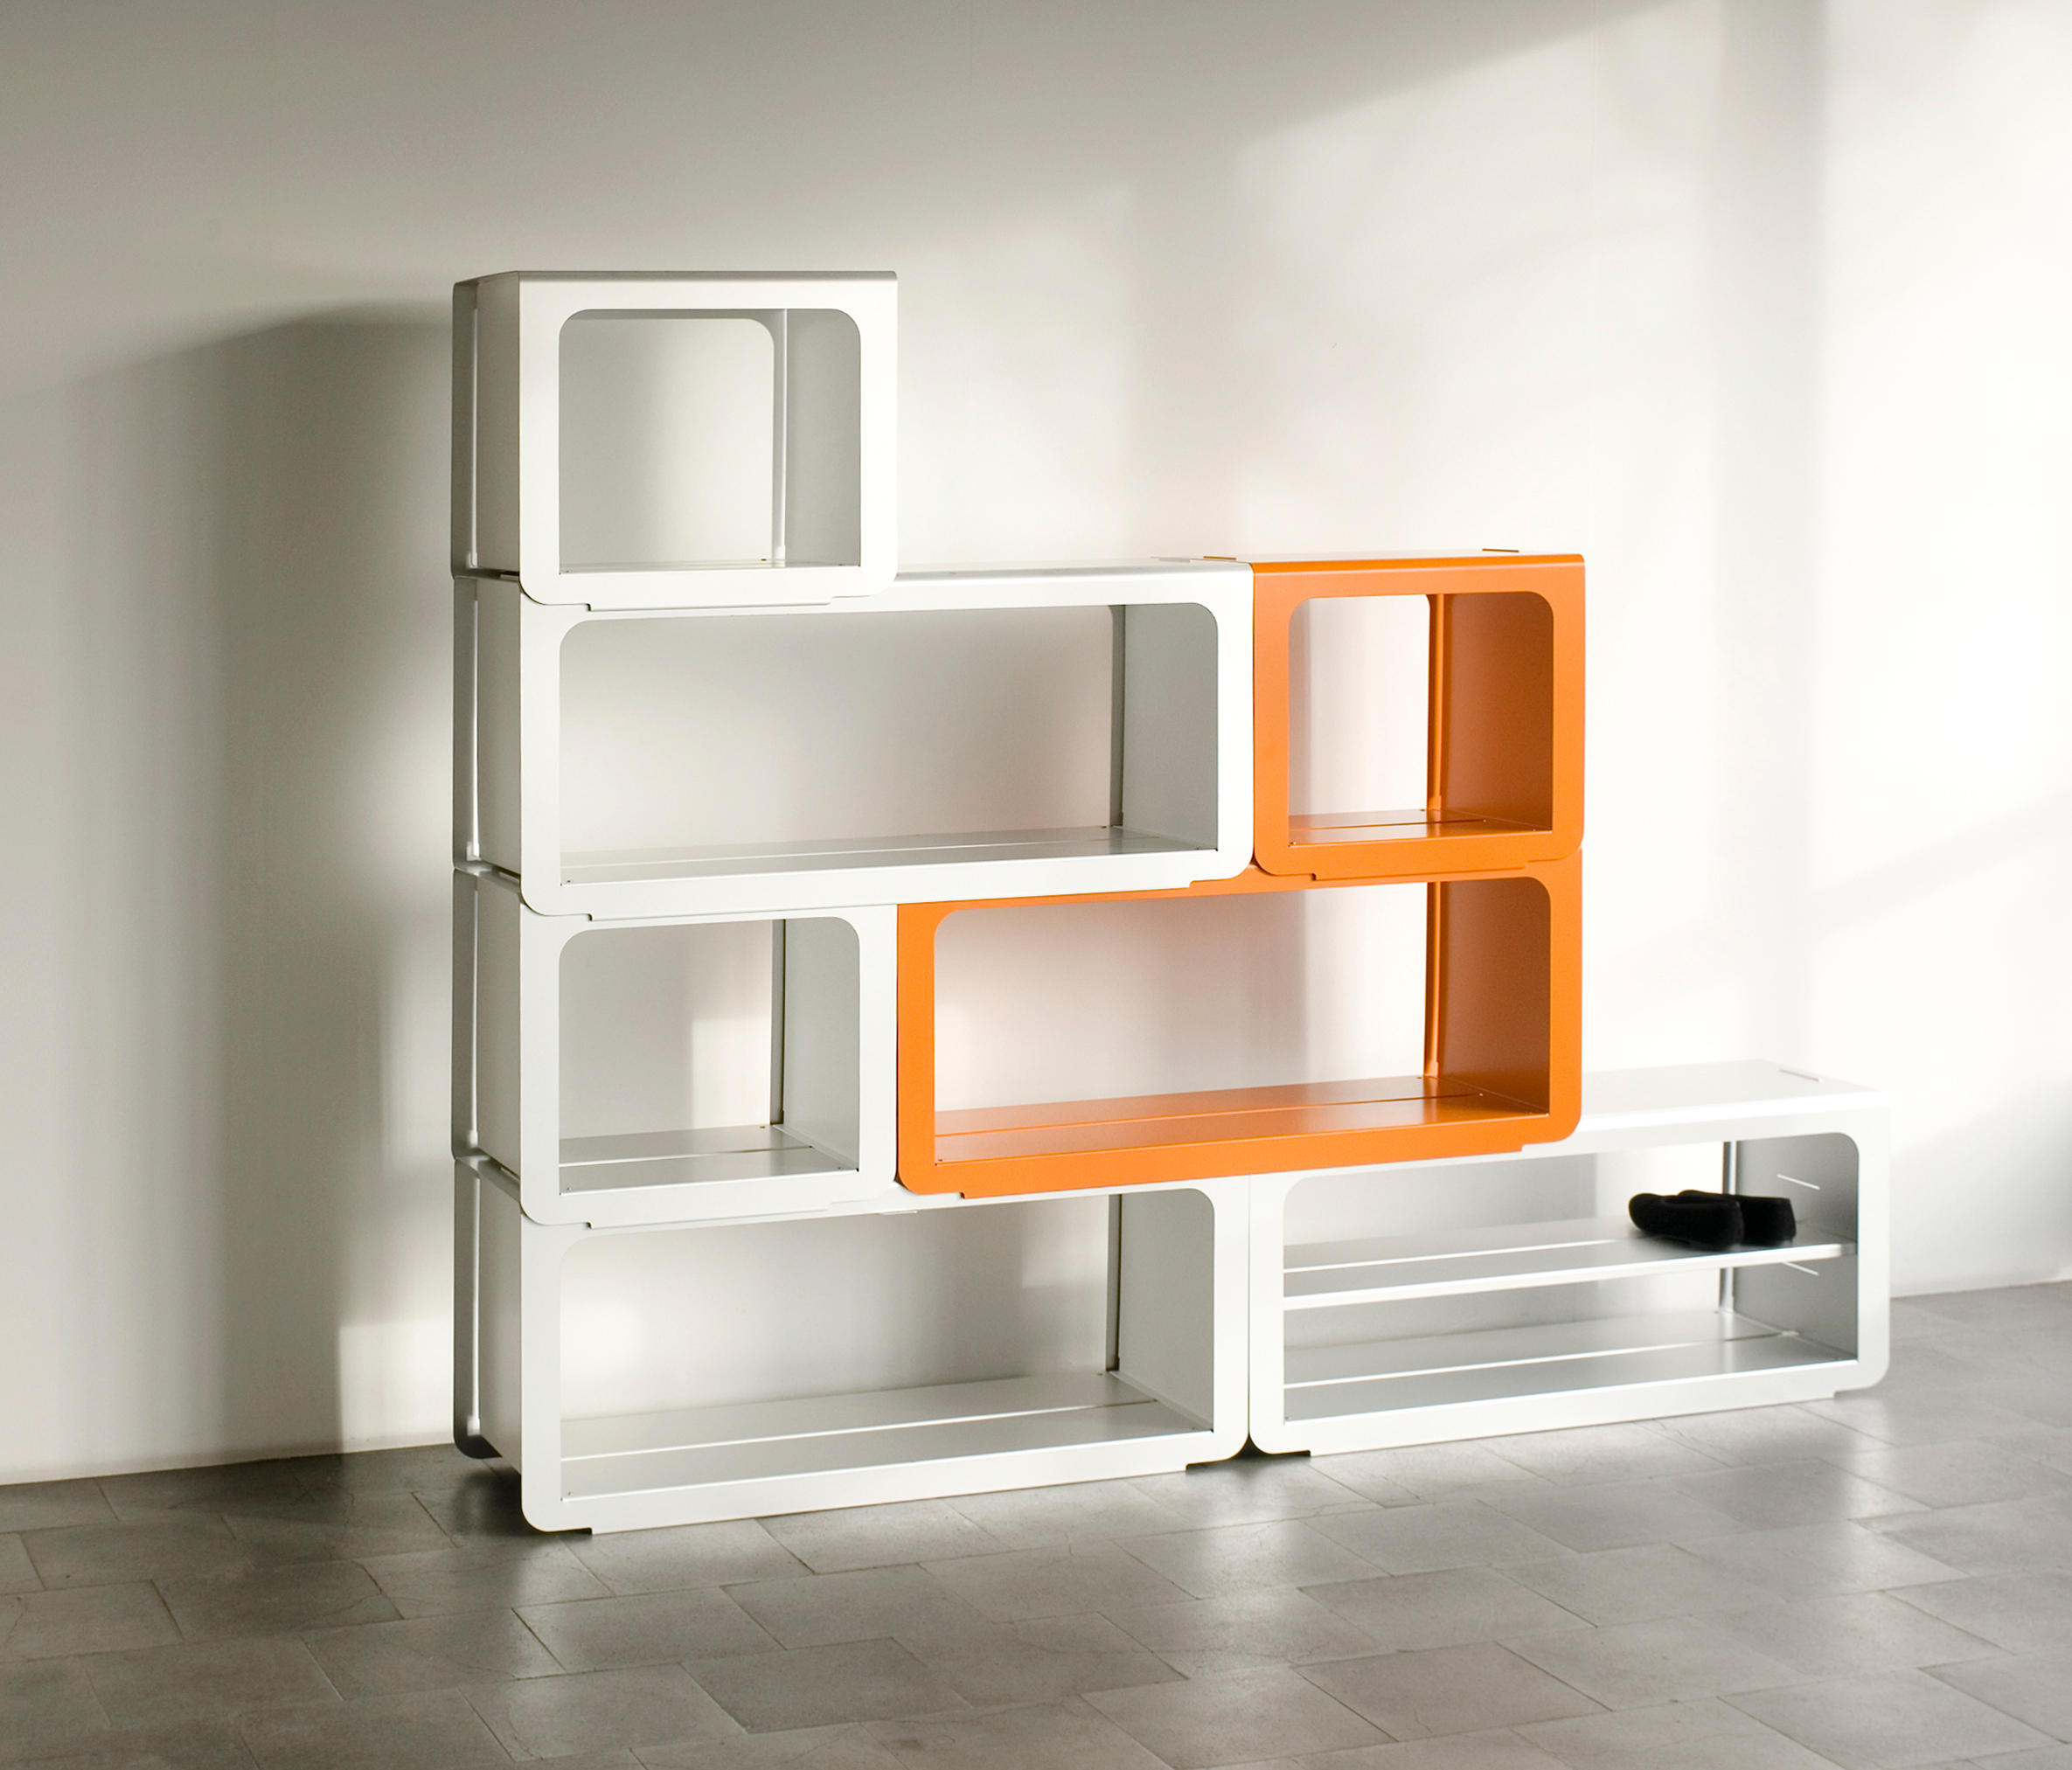 Design Regalsysteme Stack Regalsystem - Regale Von Lehni | Architonic